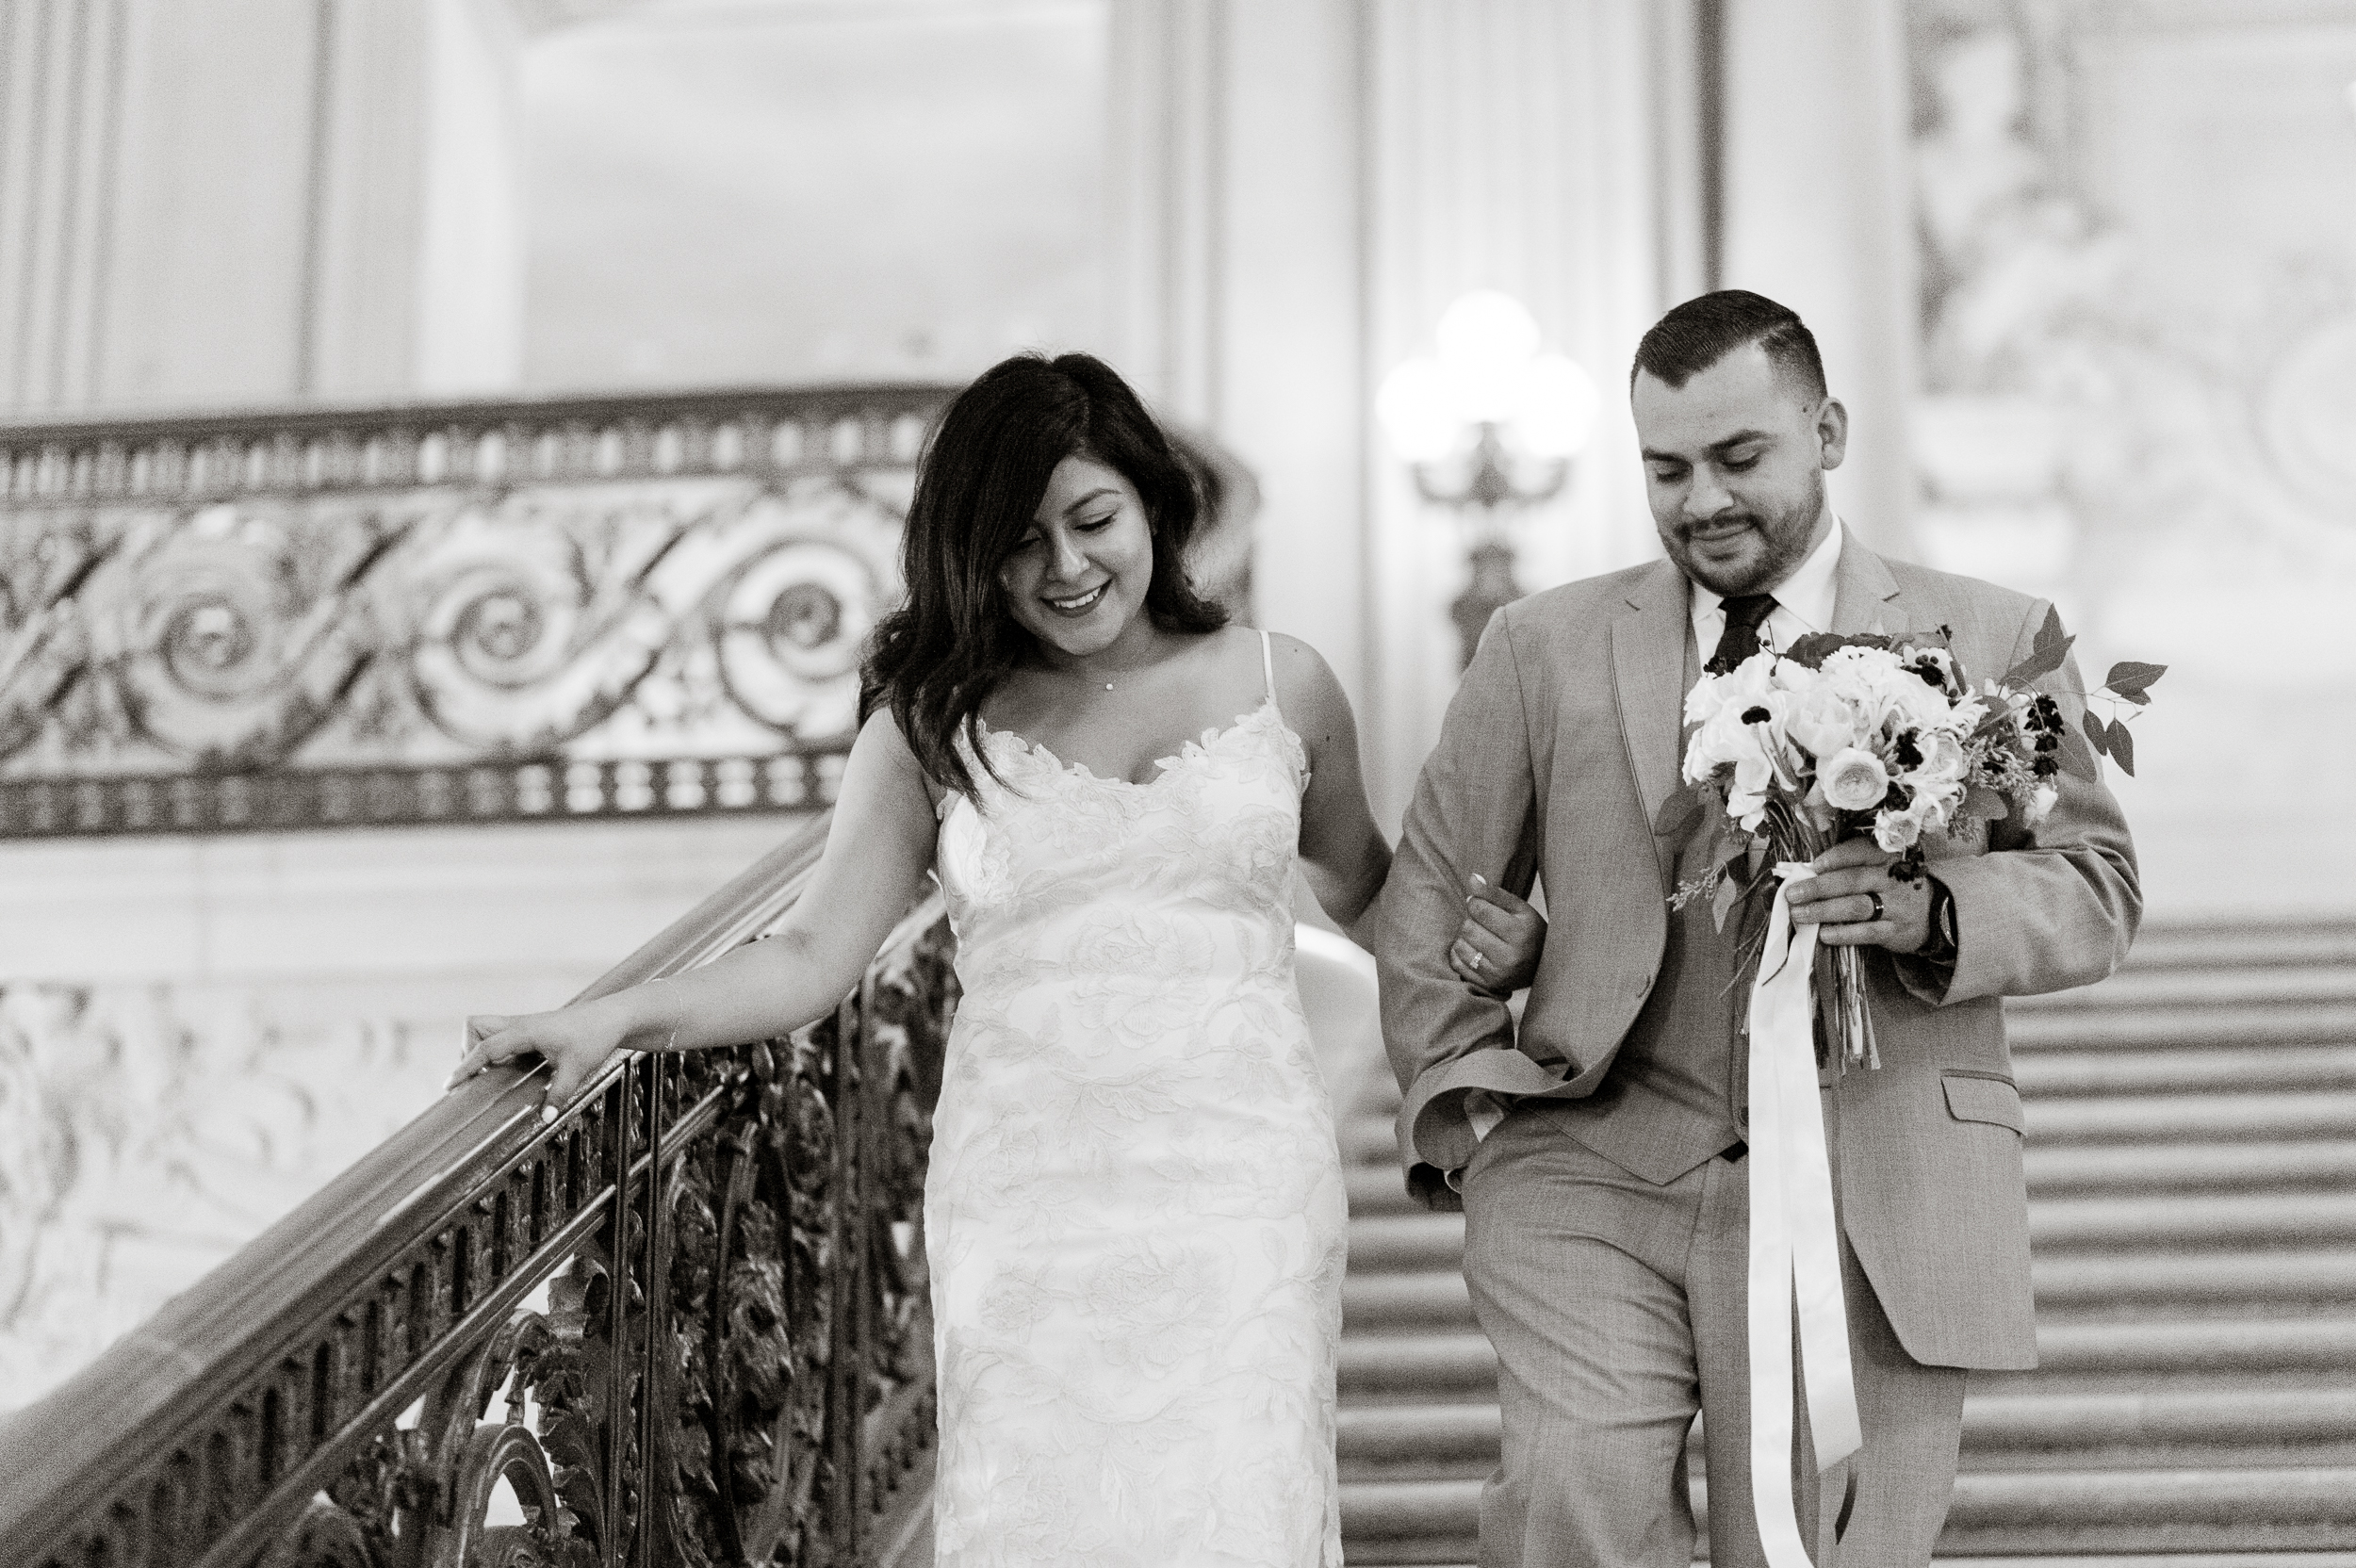 san-francisco-city-hall-wedding-vivianchen-RK20.jpg